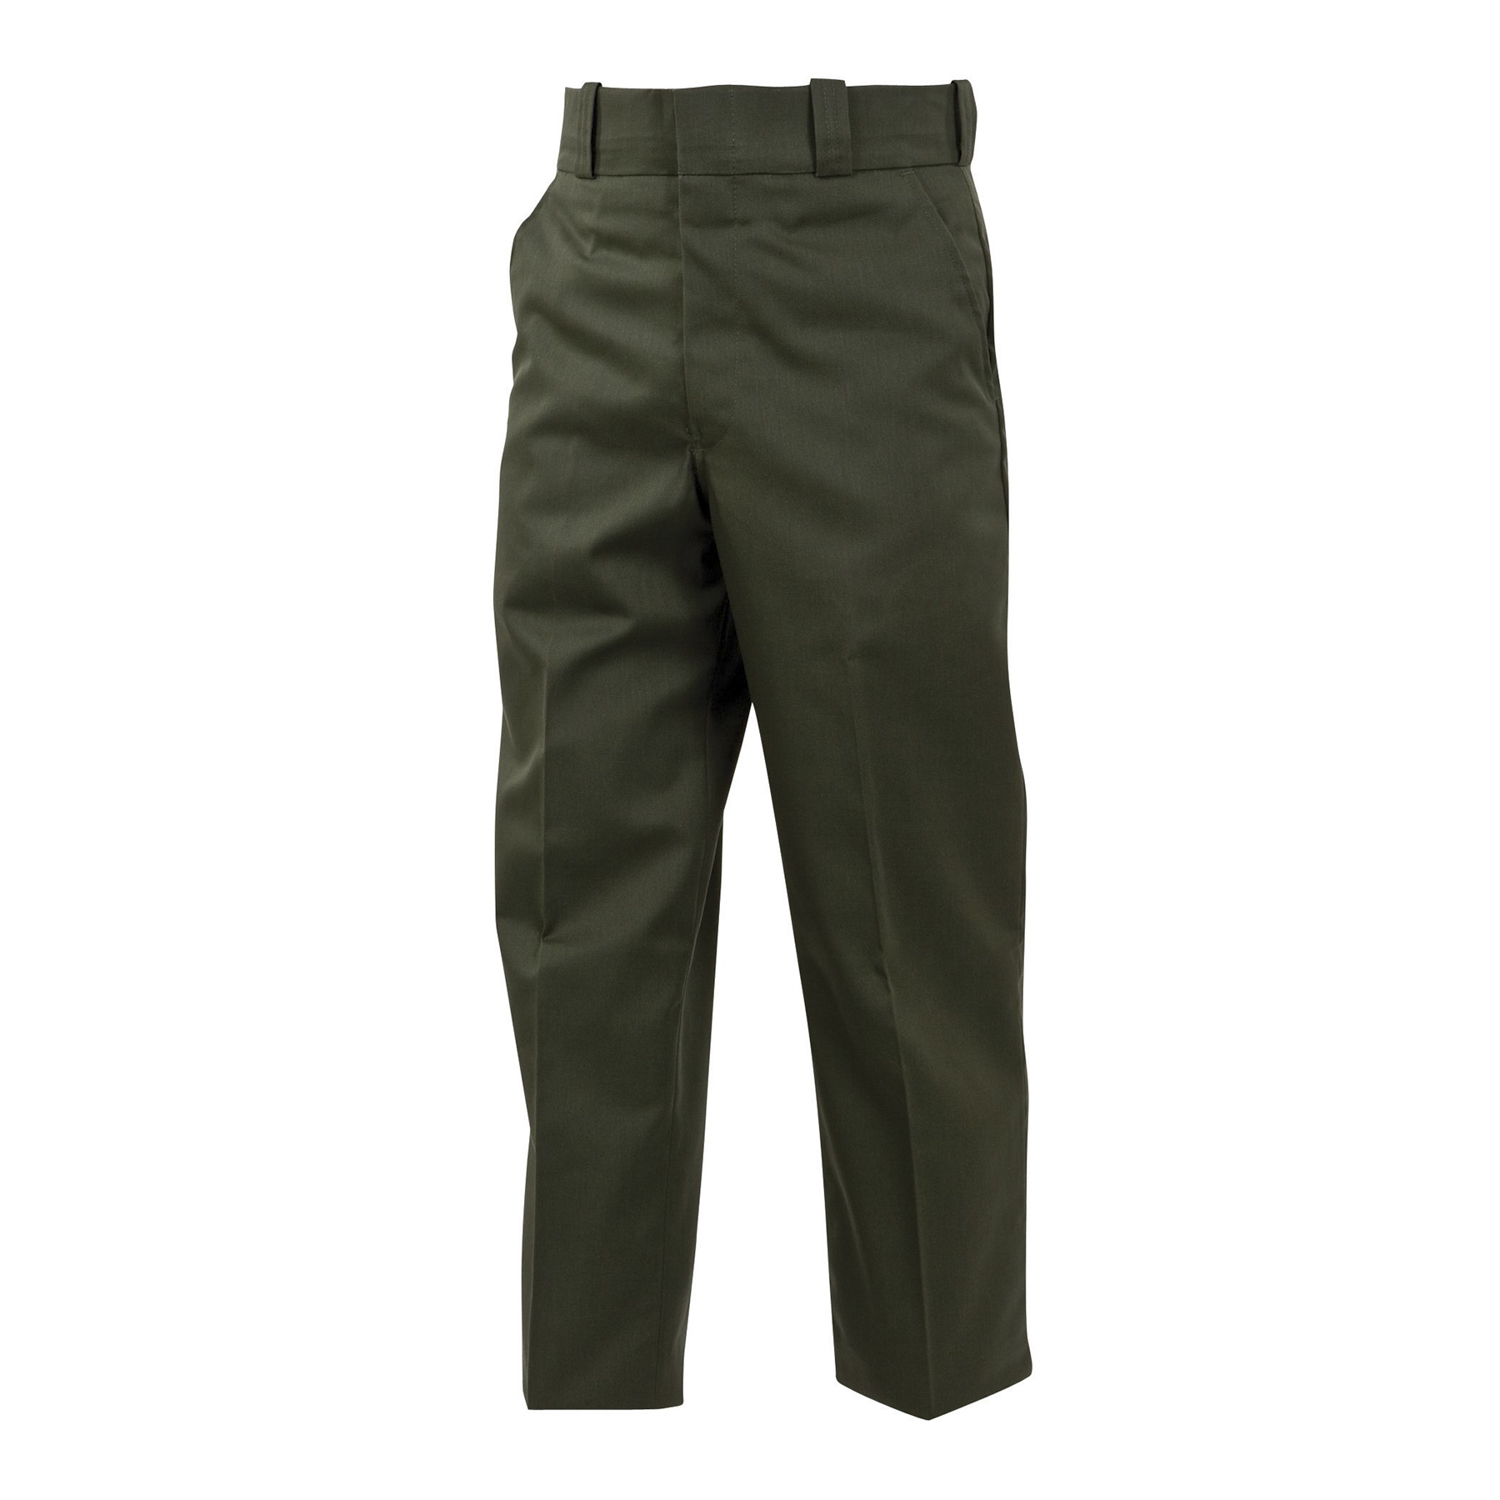 Elbeco Ladies Class B Trousers